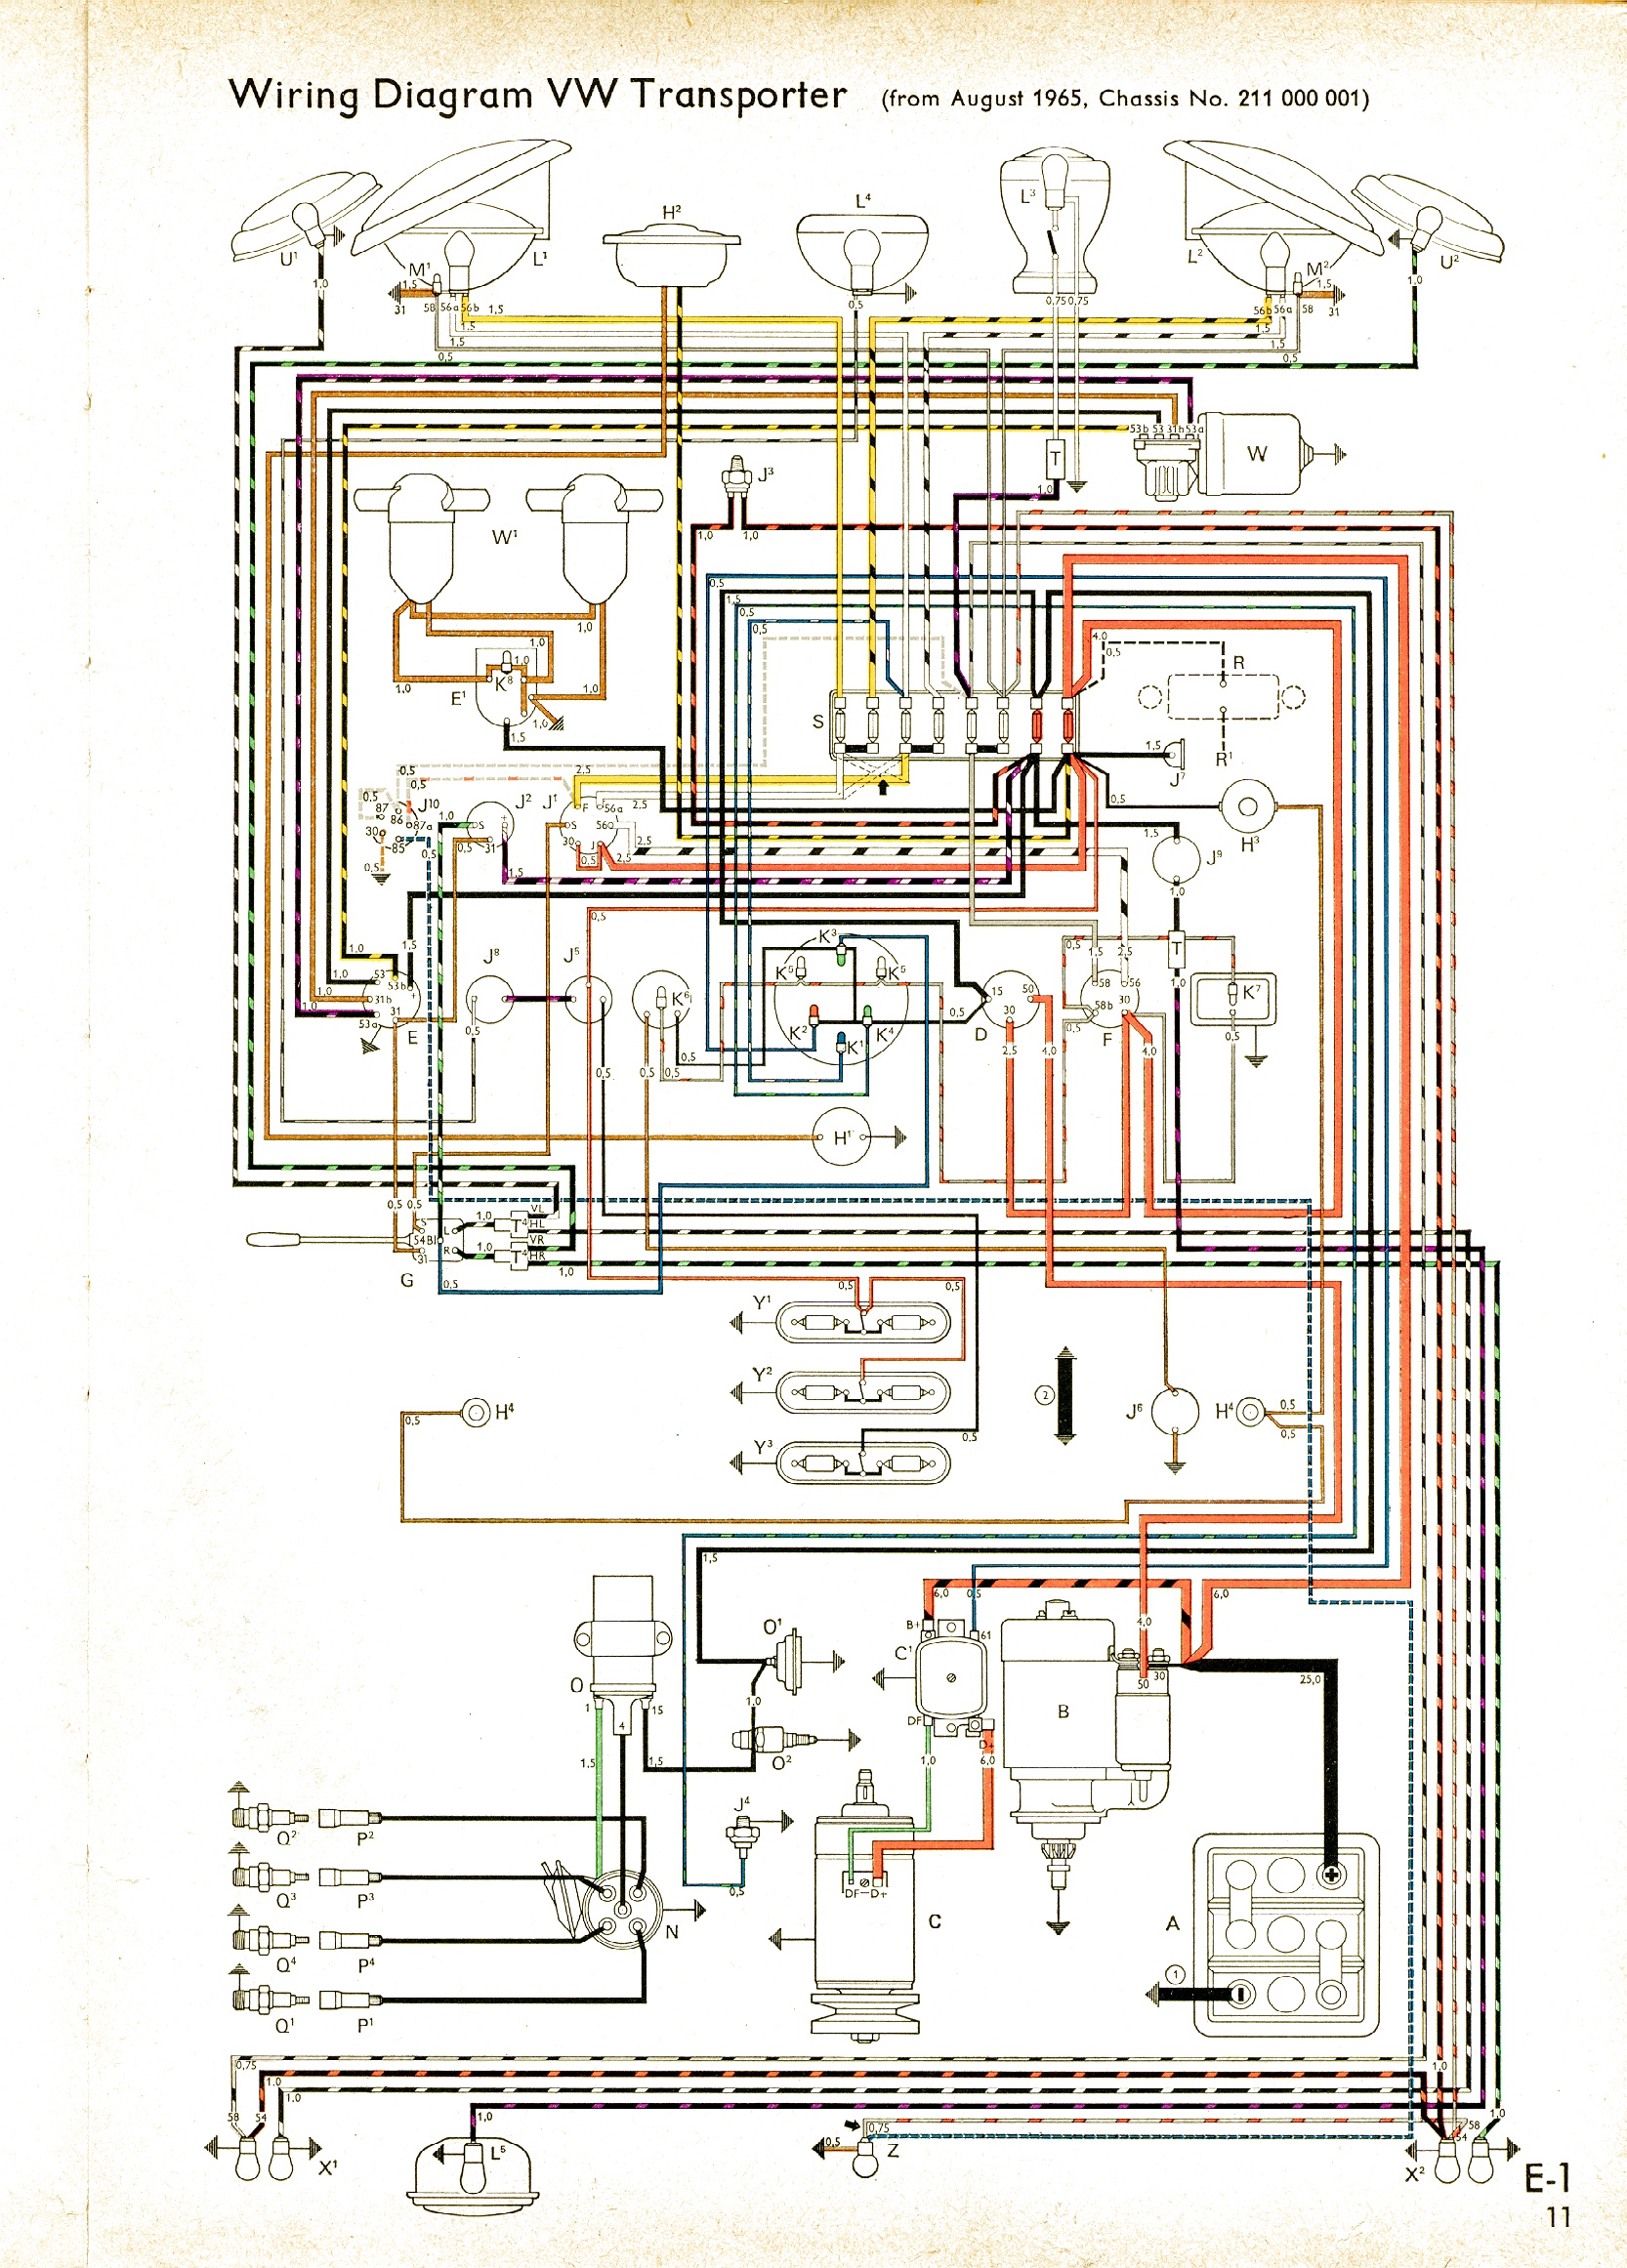 bus 65 bus wiring diagram vw wiring harness diagram \u2022 wiring diagrams j 1971 vw bus wiring diagram at mifinder.co